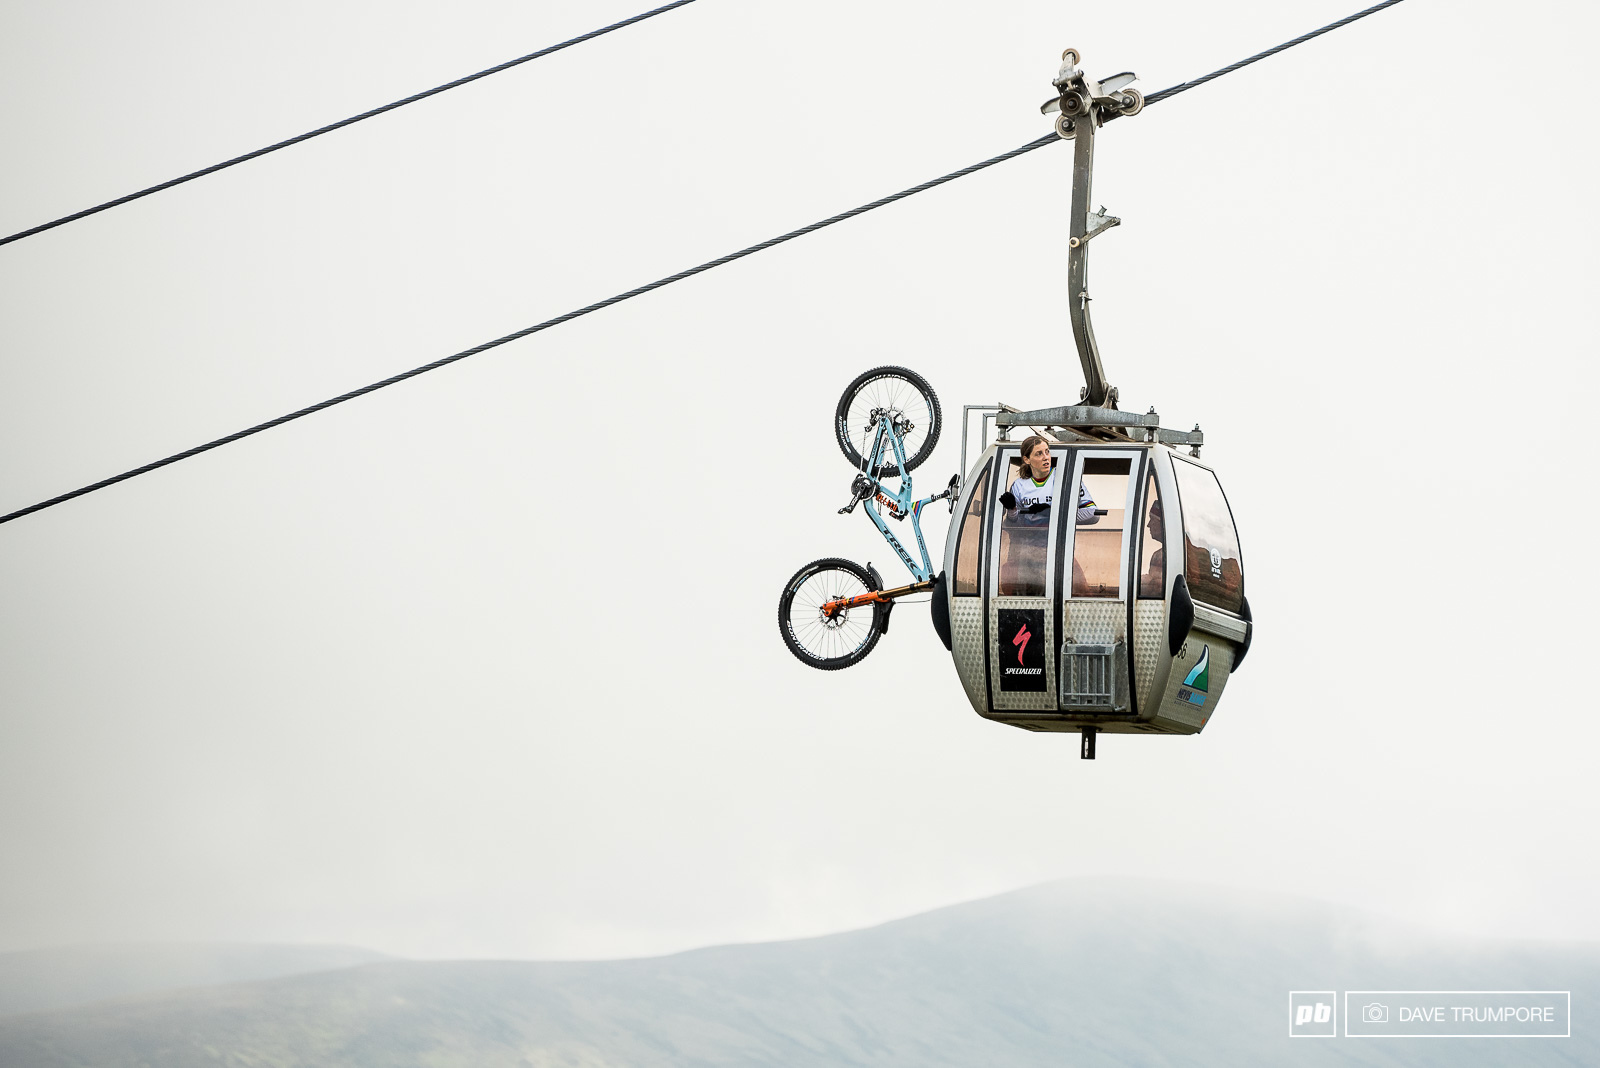 Rachel Atherton checking lines from the gondola in training on what sadly would be her final trip to the top of the track